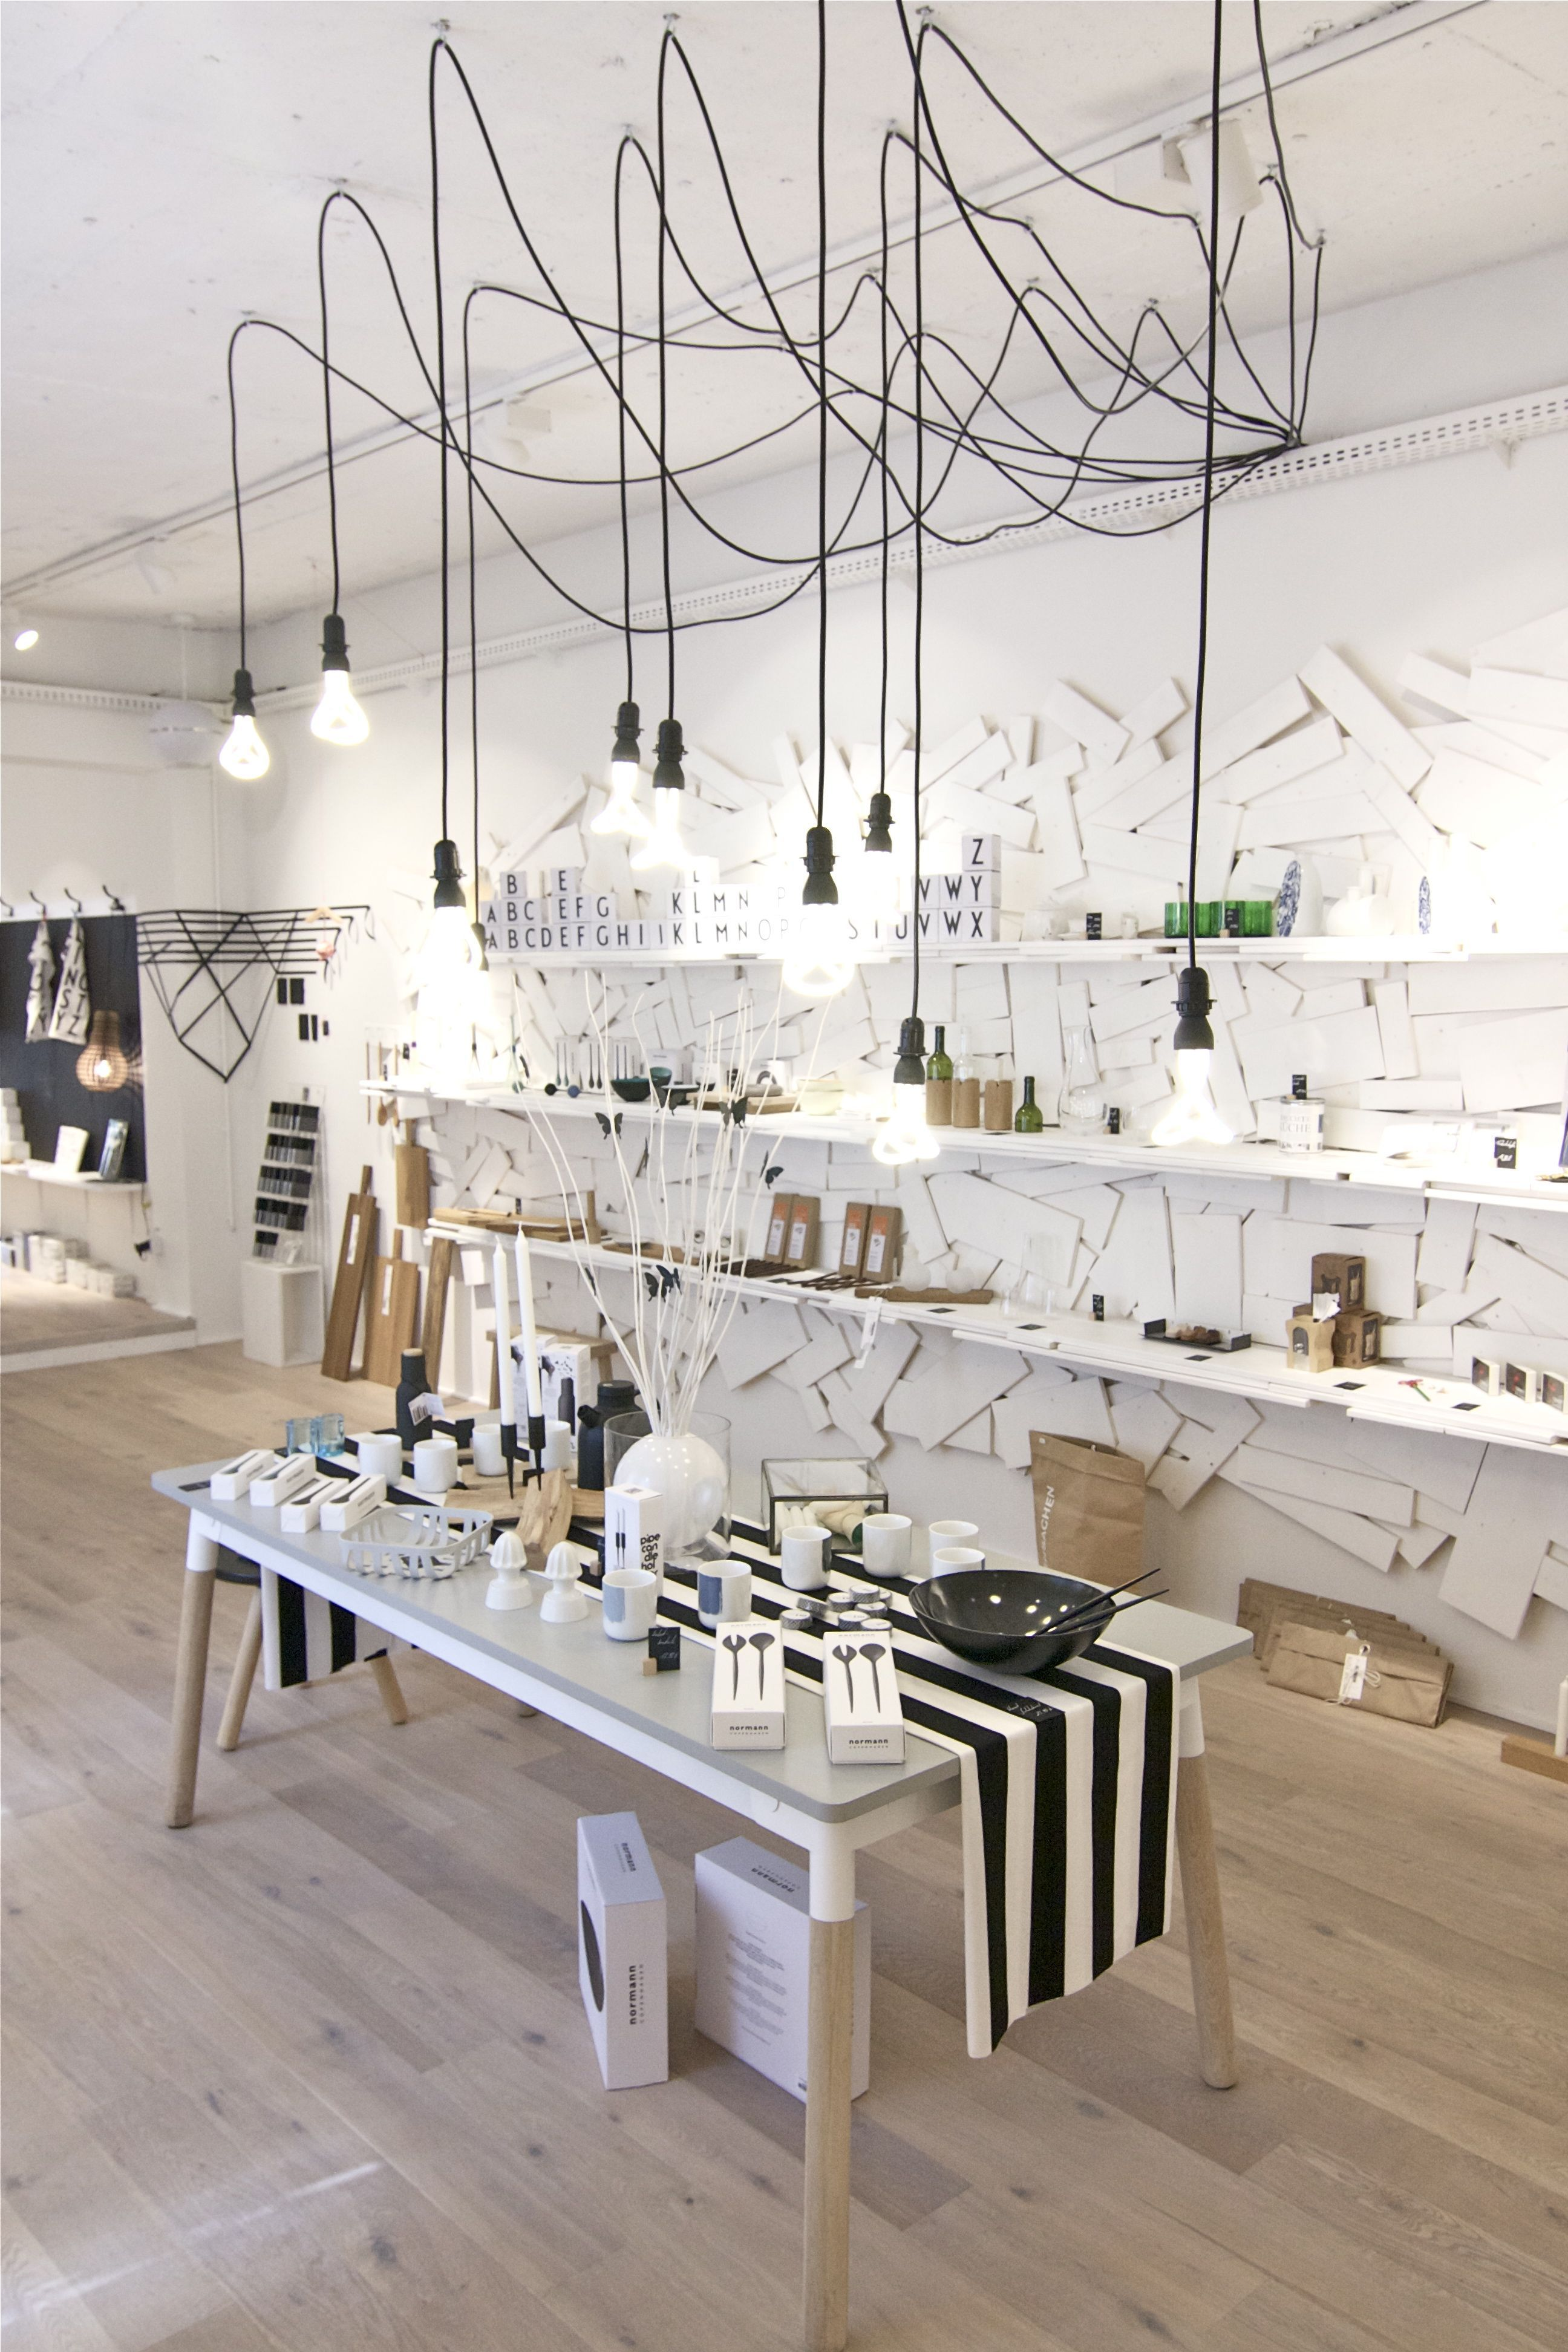 19 Amazing Design Stores To Inspire Your Restore Store Renovation